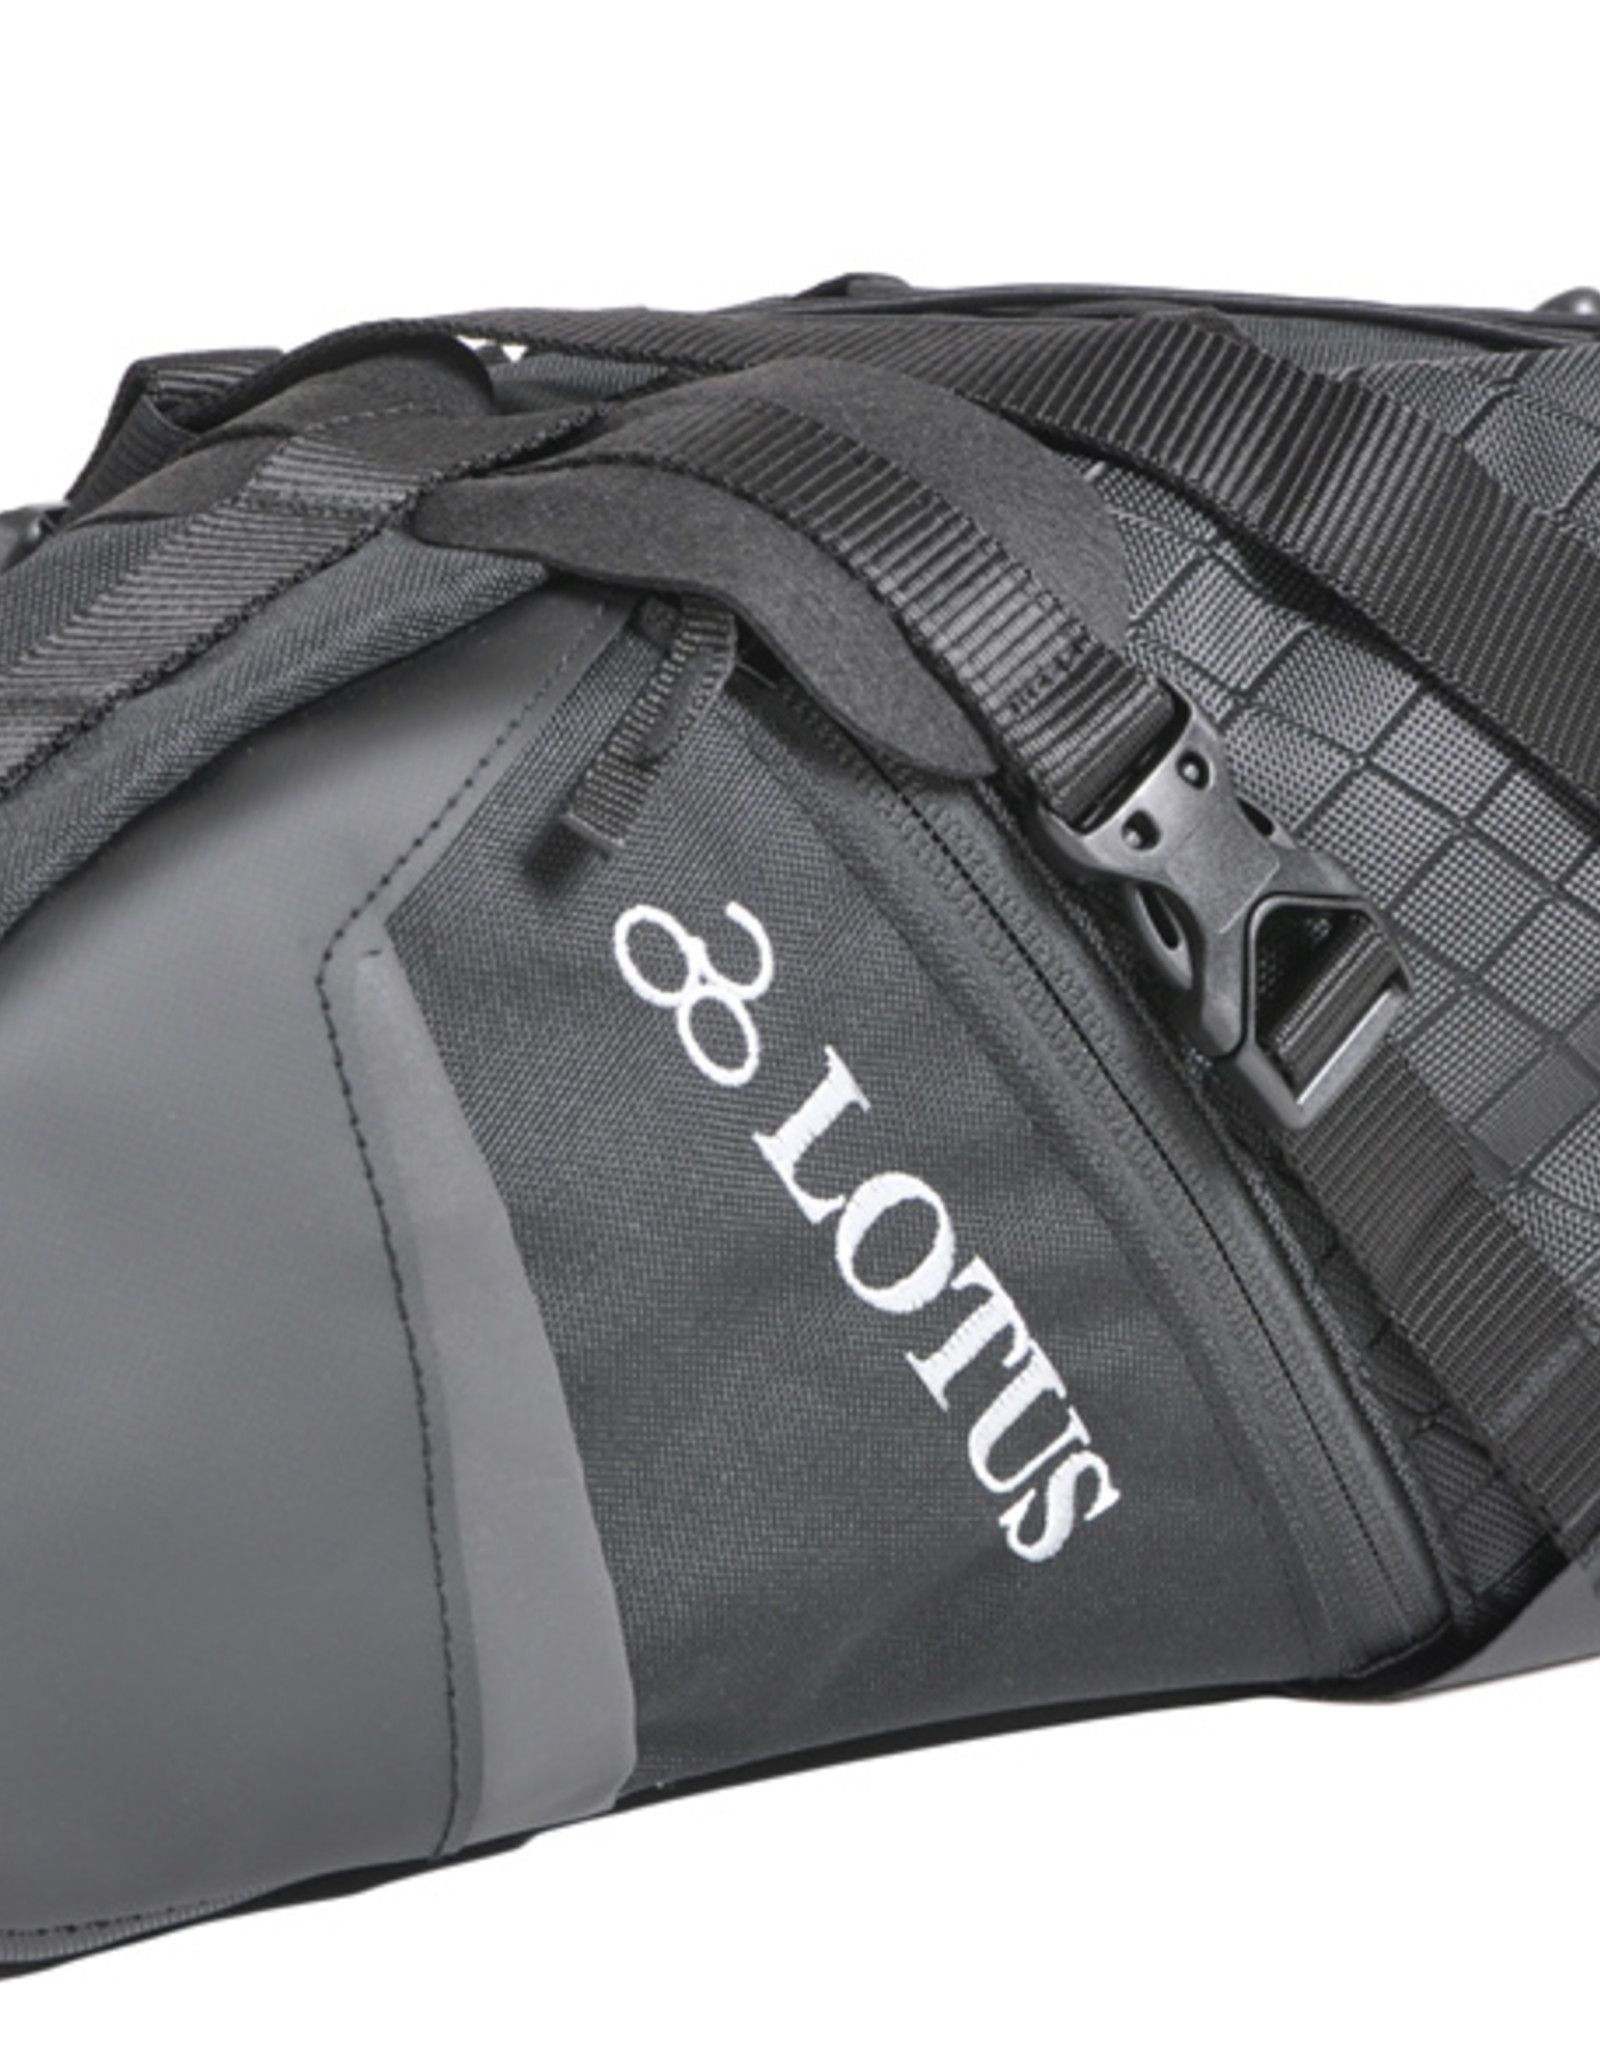 Lotus Tough Series TH7-7703 Saddlebag (6L)